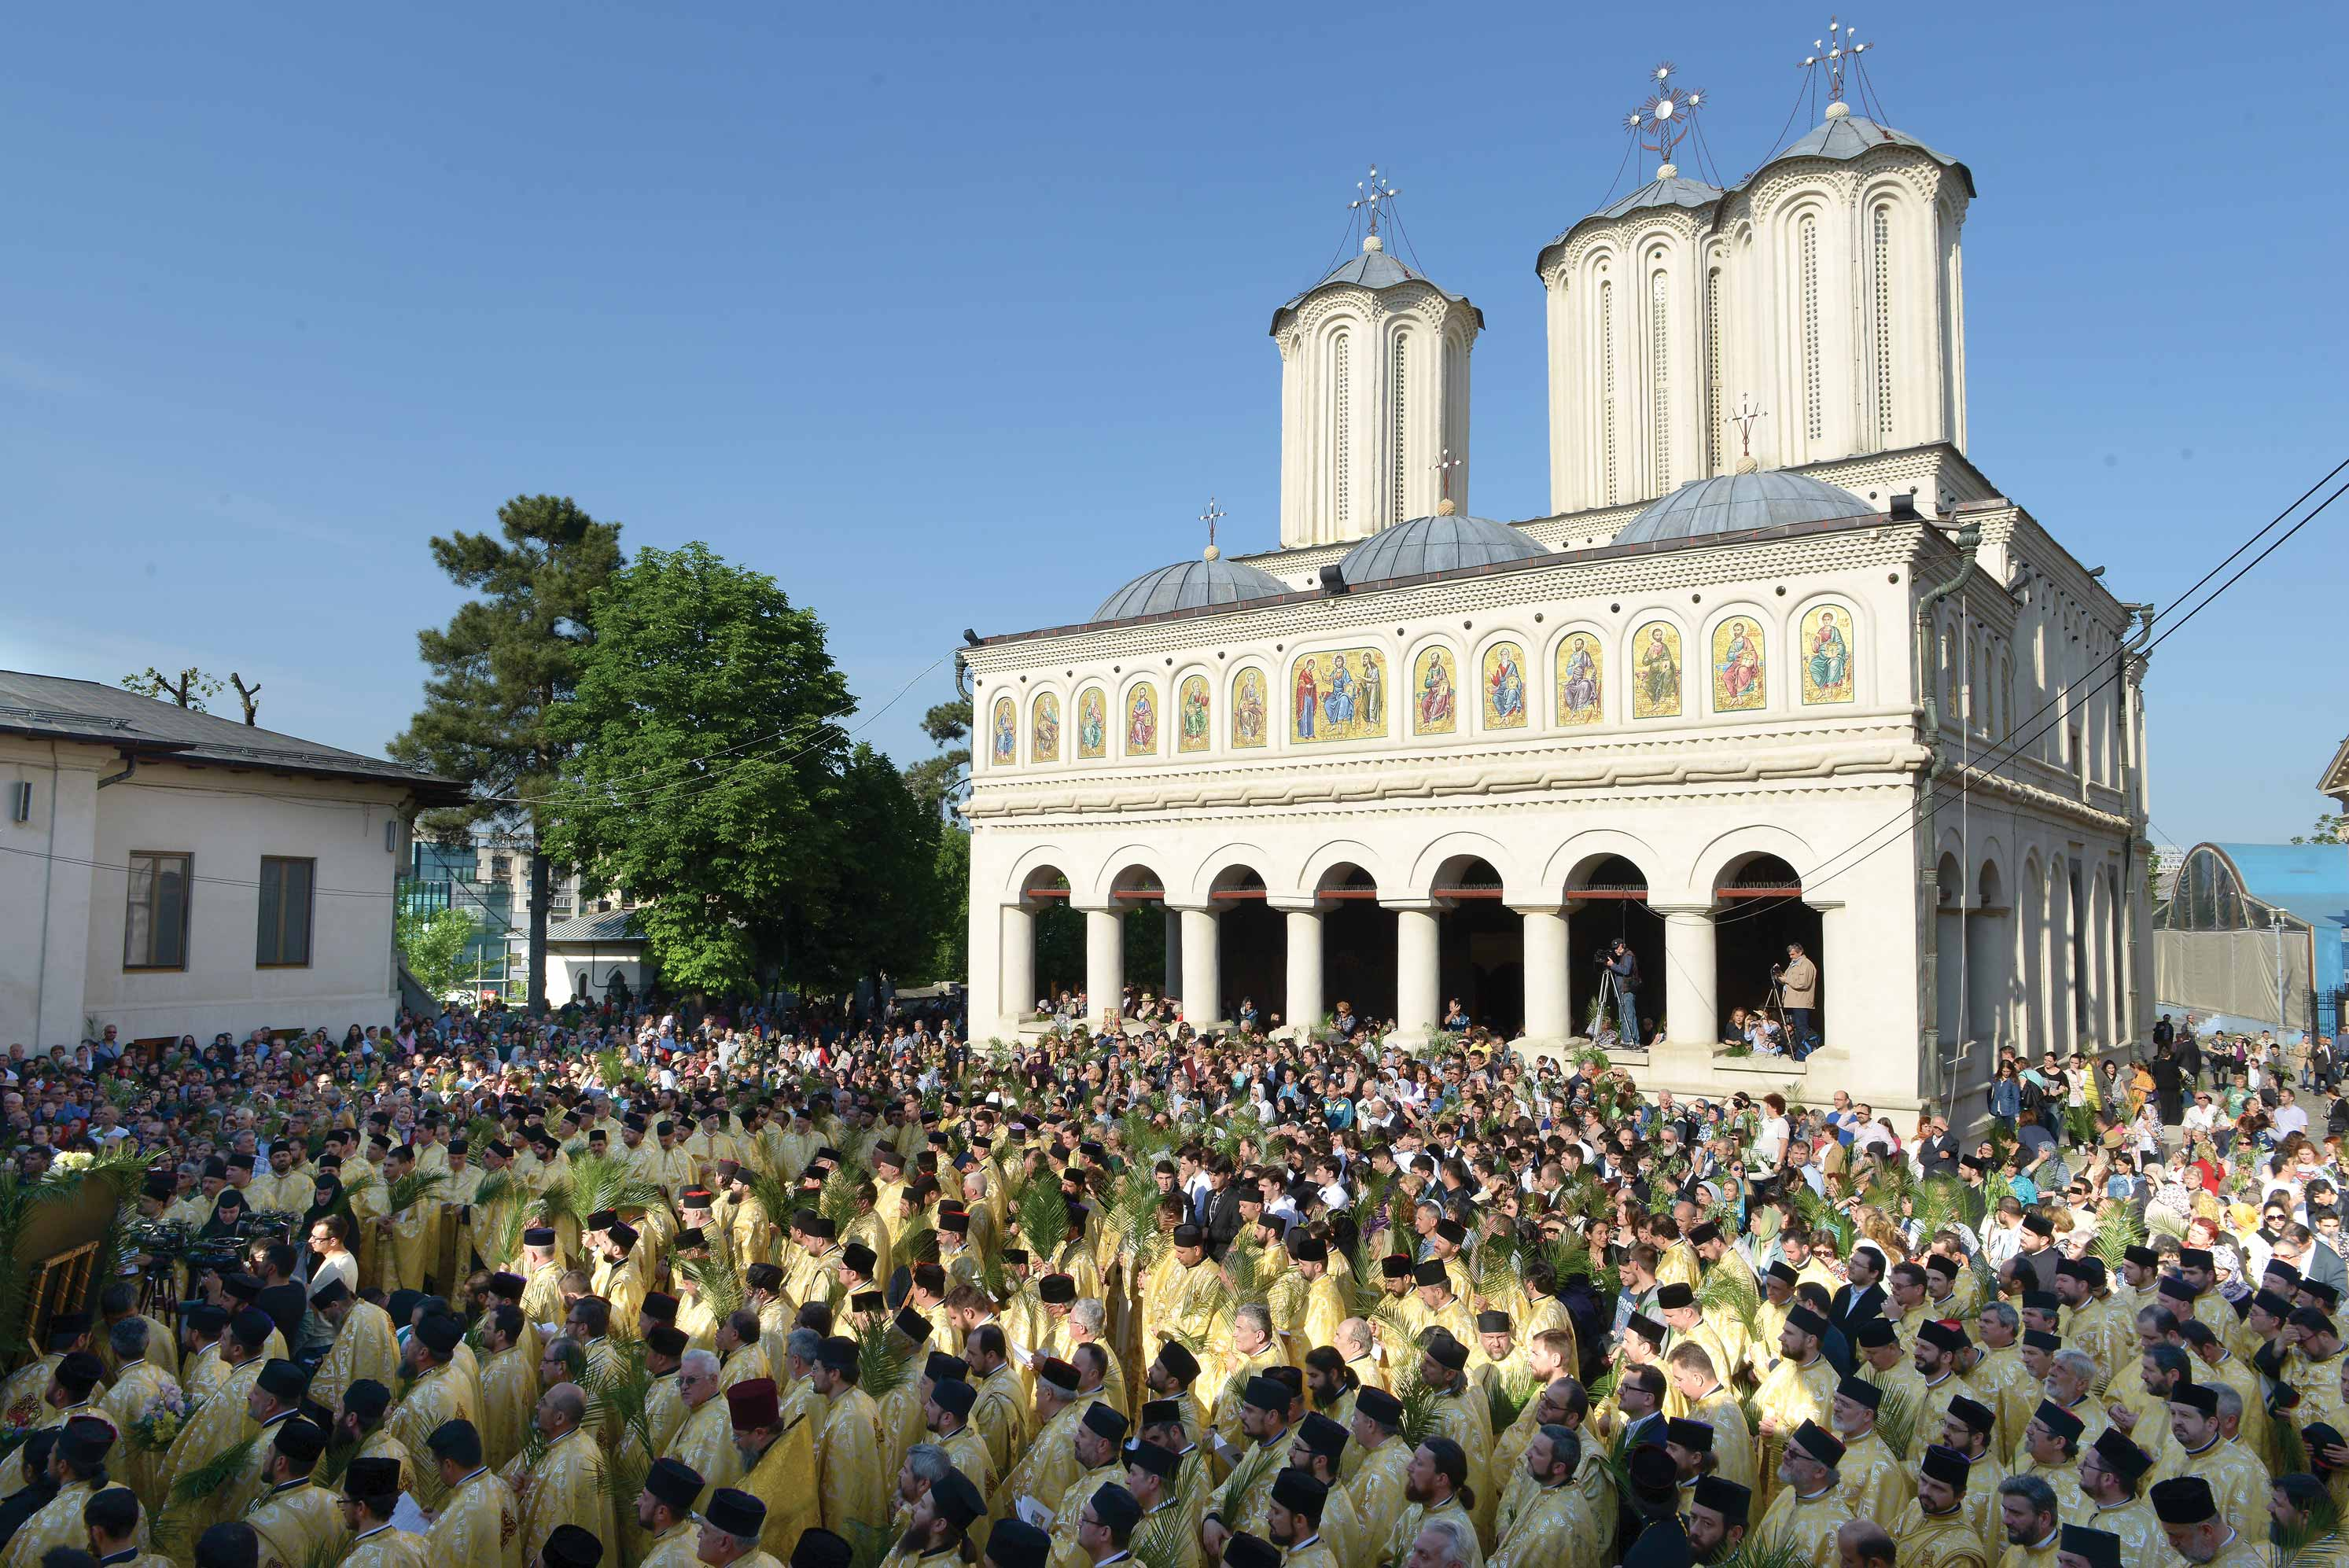 Pelerinajul – şcoală a credinţei şi expresie a vieţii îndreptate către Dumnezeu / Pilgrimage – a school of faith and an expression of life turned to God